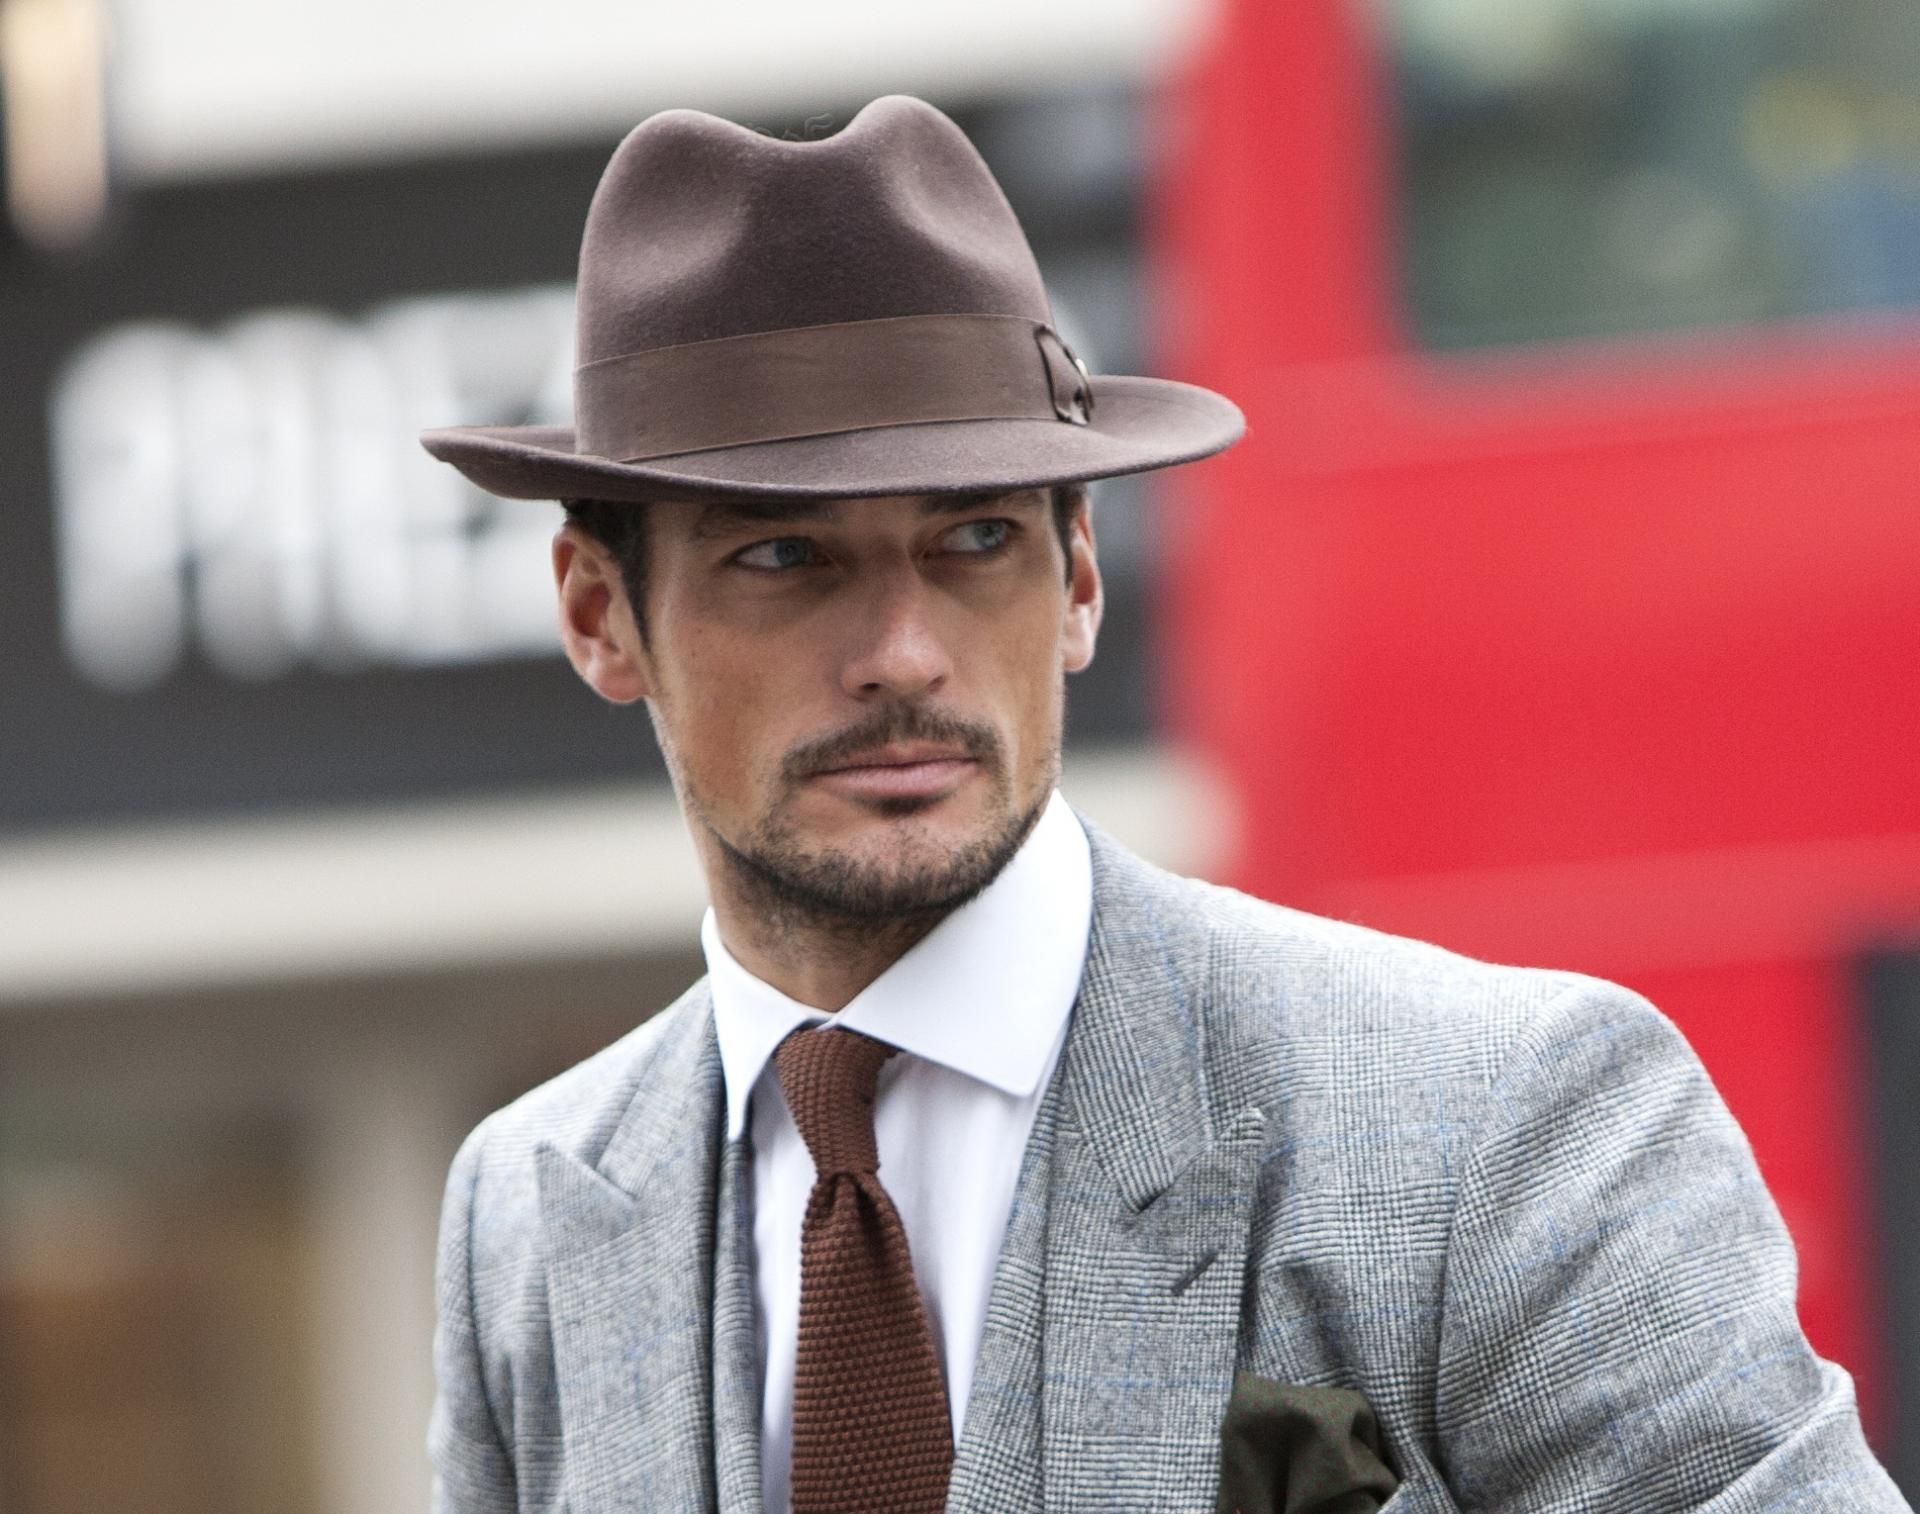 David Gandy by Conor Clinch